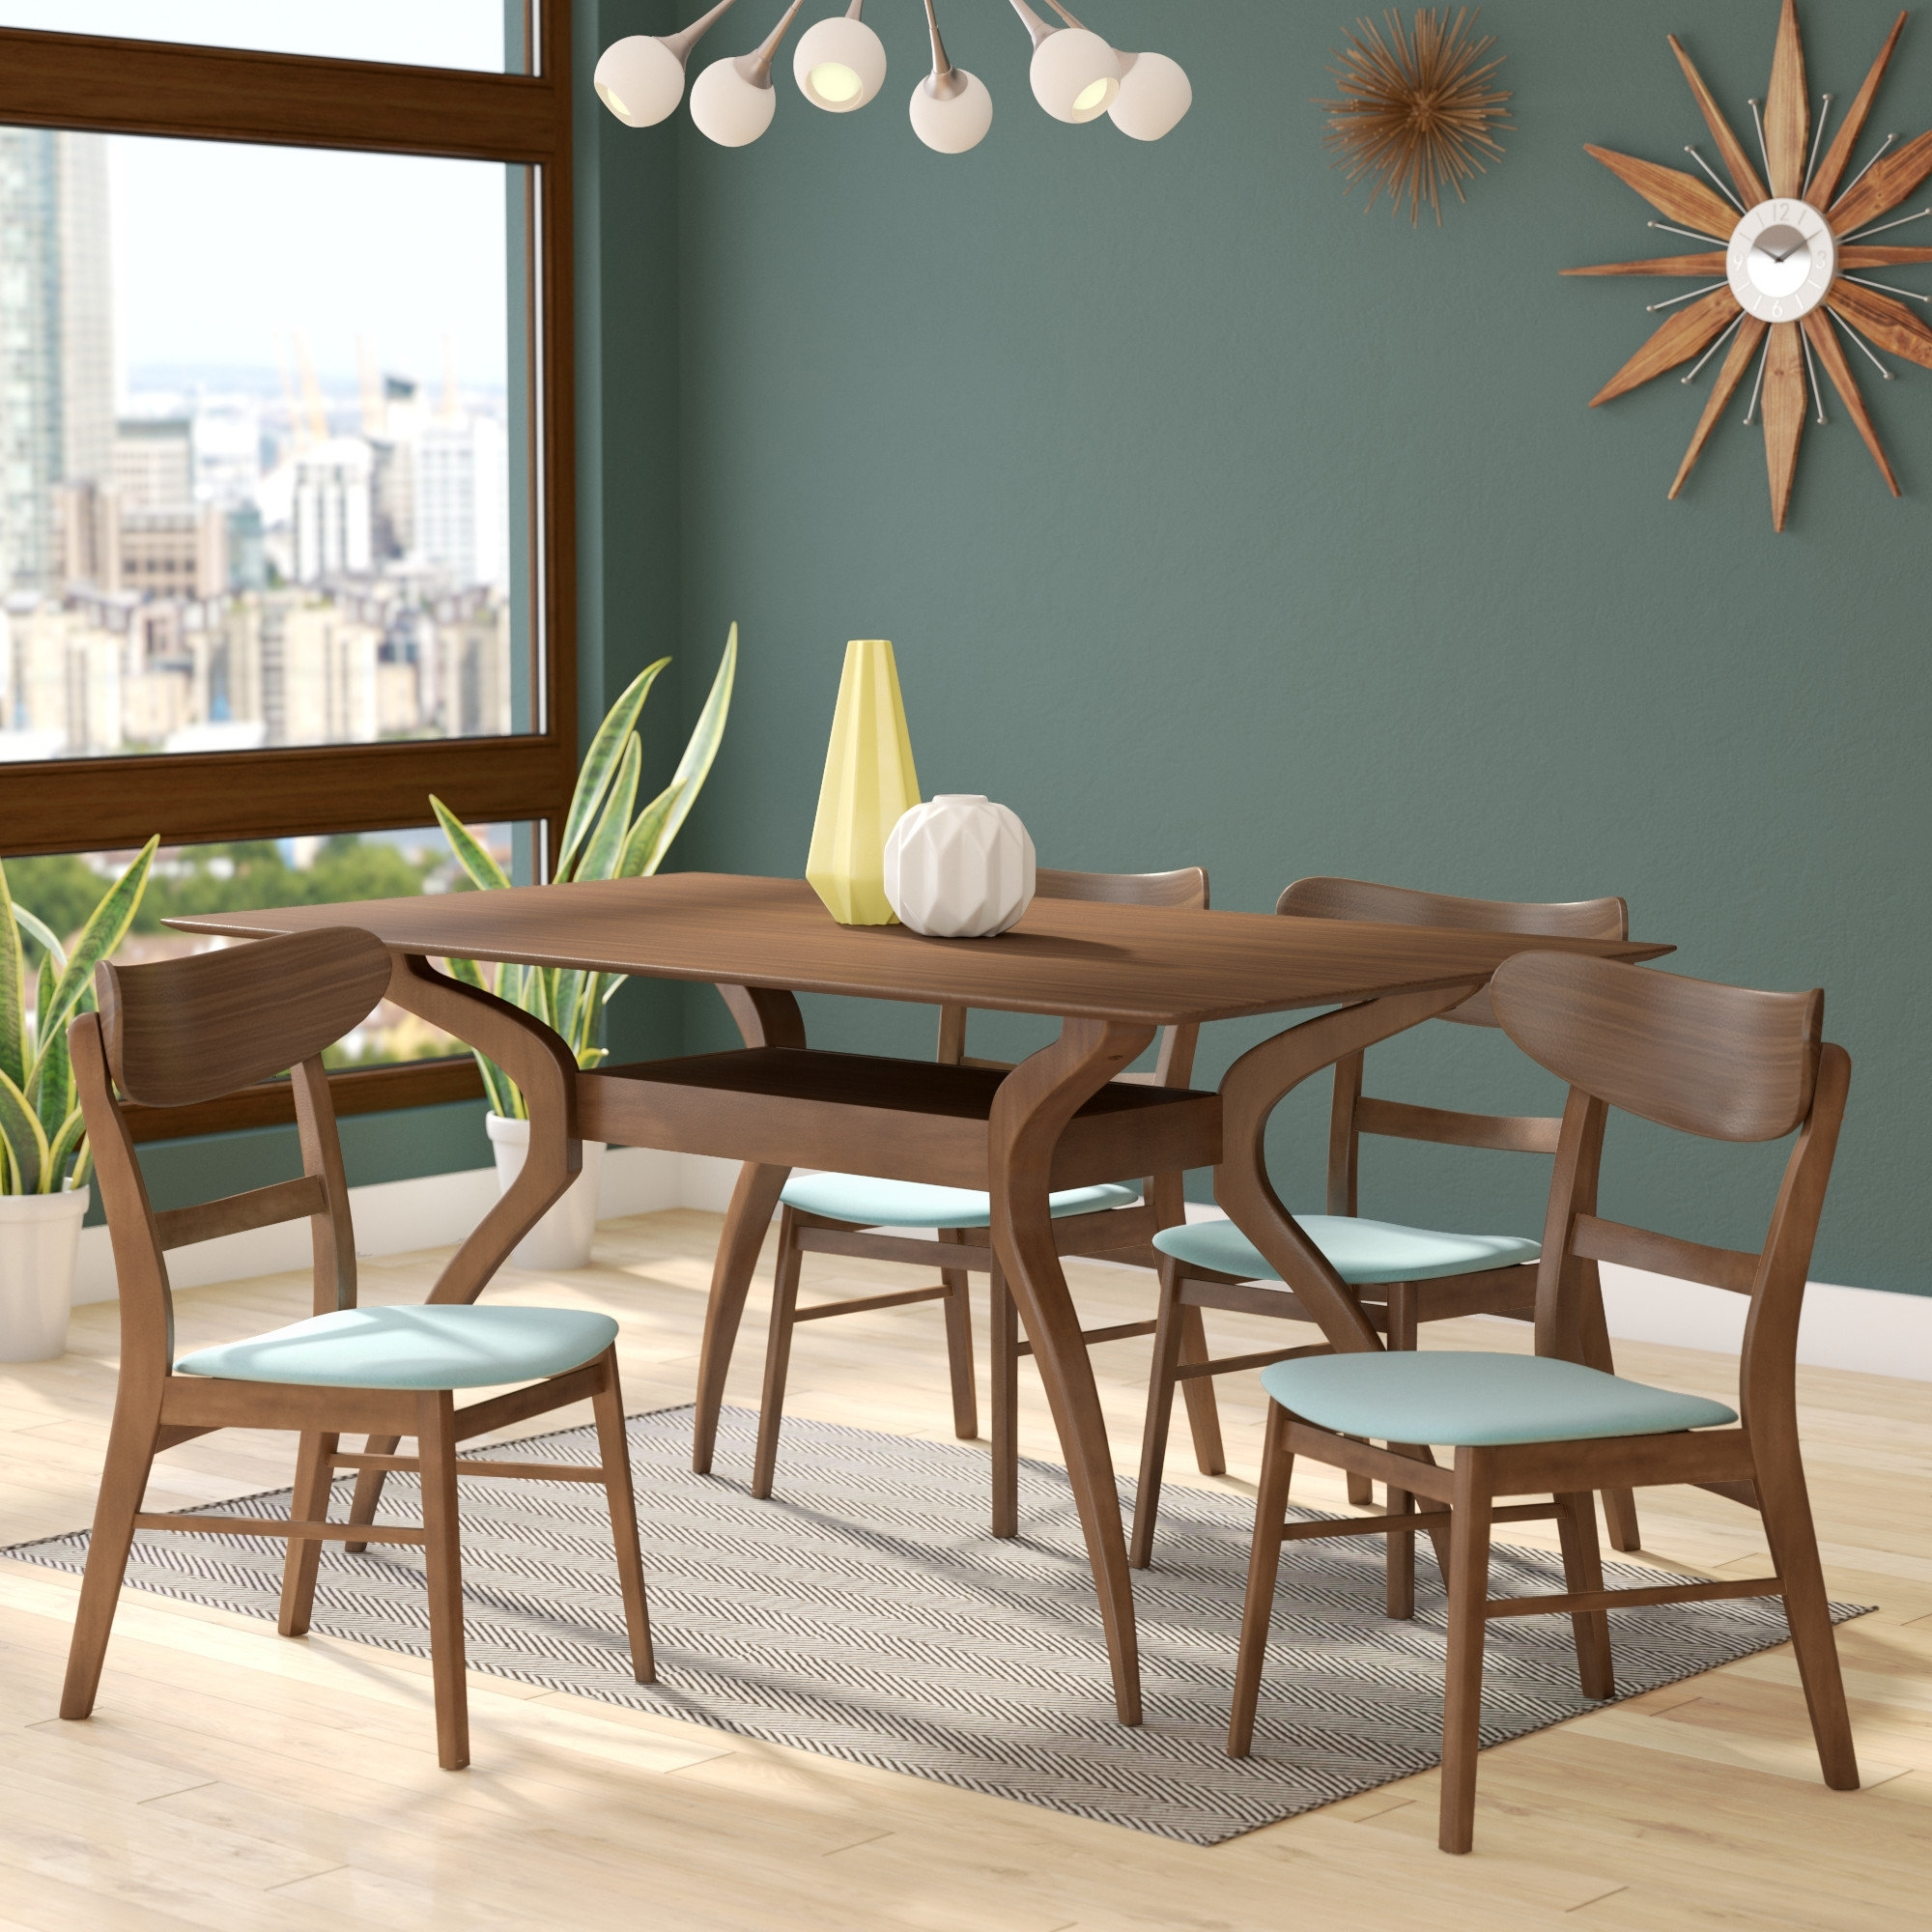 Langley Street Patterson 5 Piece Dining Set & Reviews | Wayfair Pertaining To Recent Patterson 6 Piece Dining Sets (Photo 3 of 20)